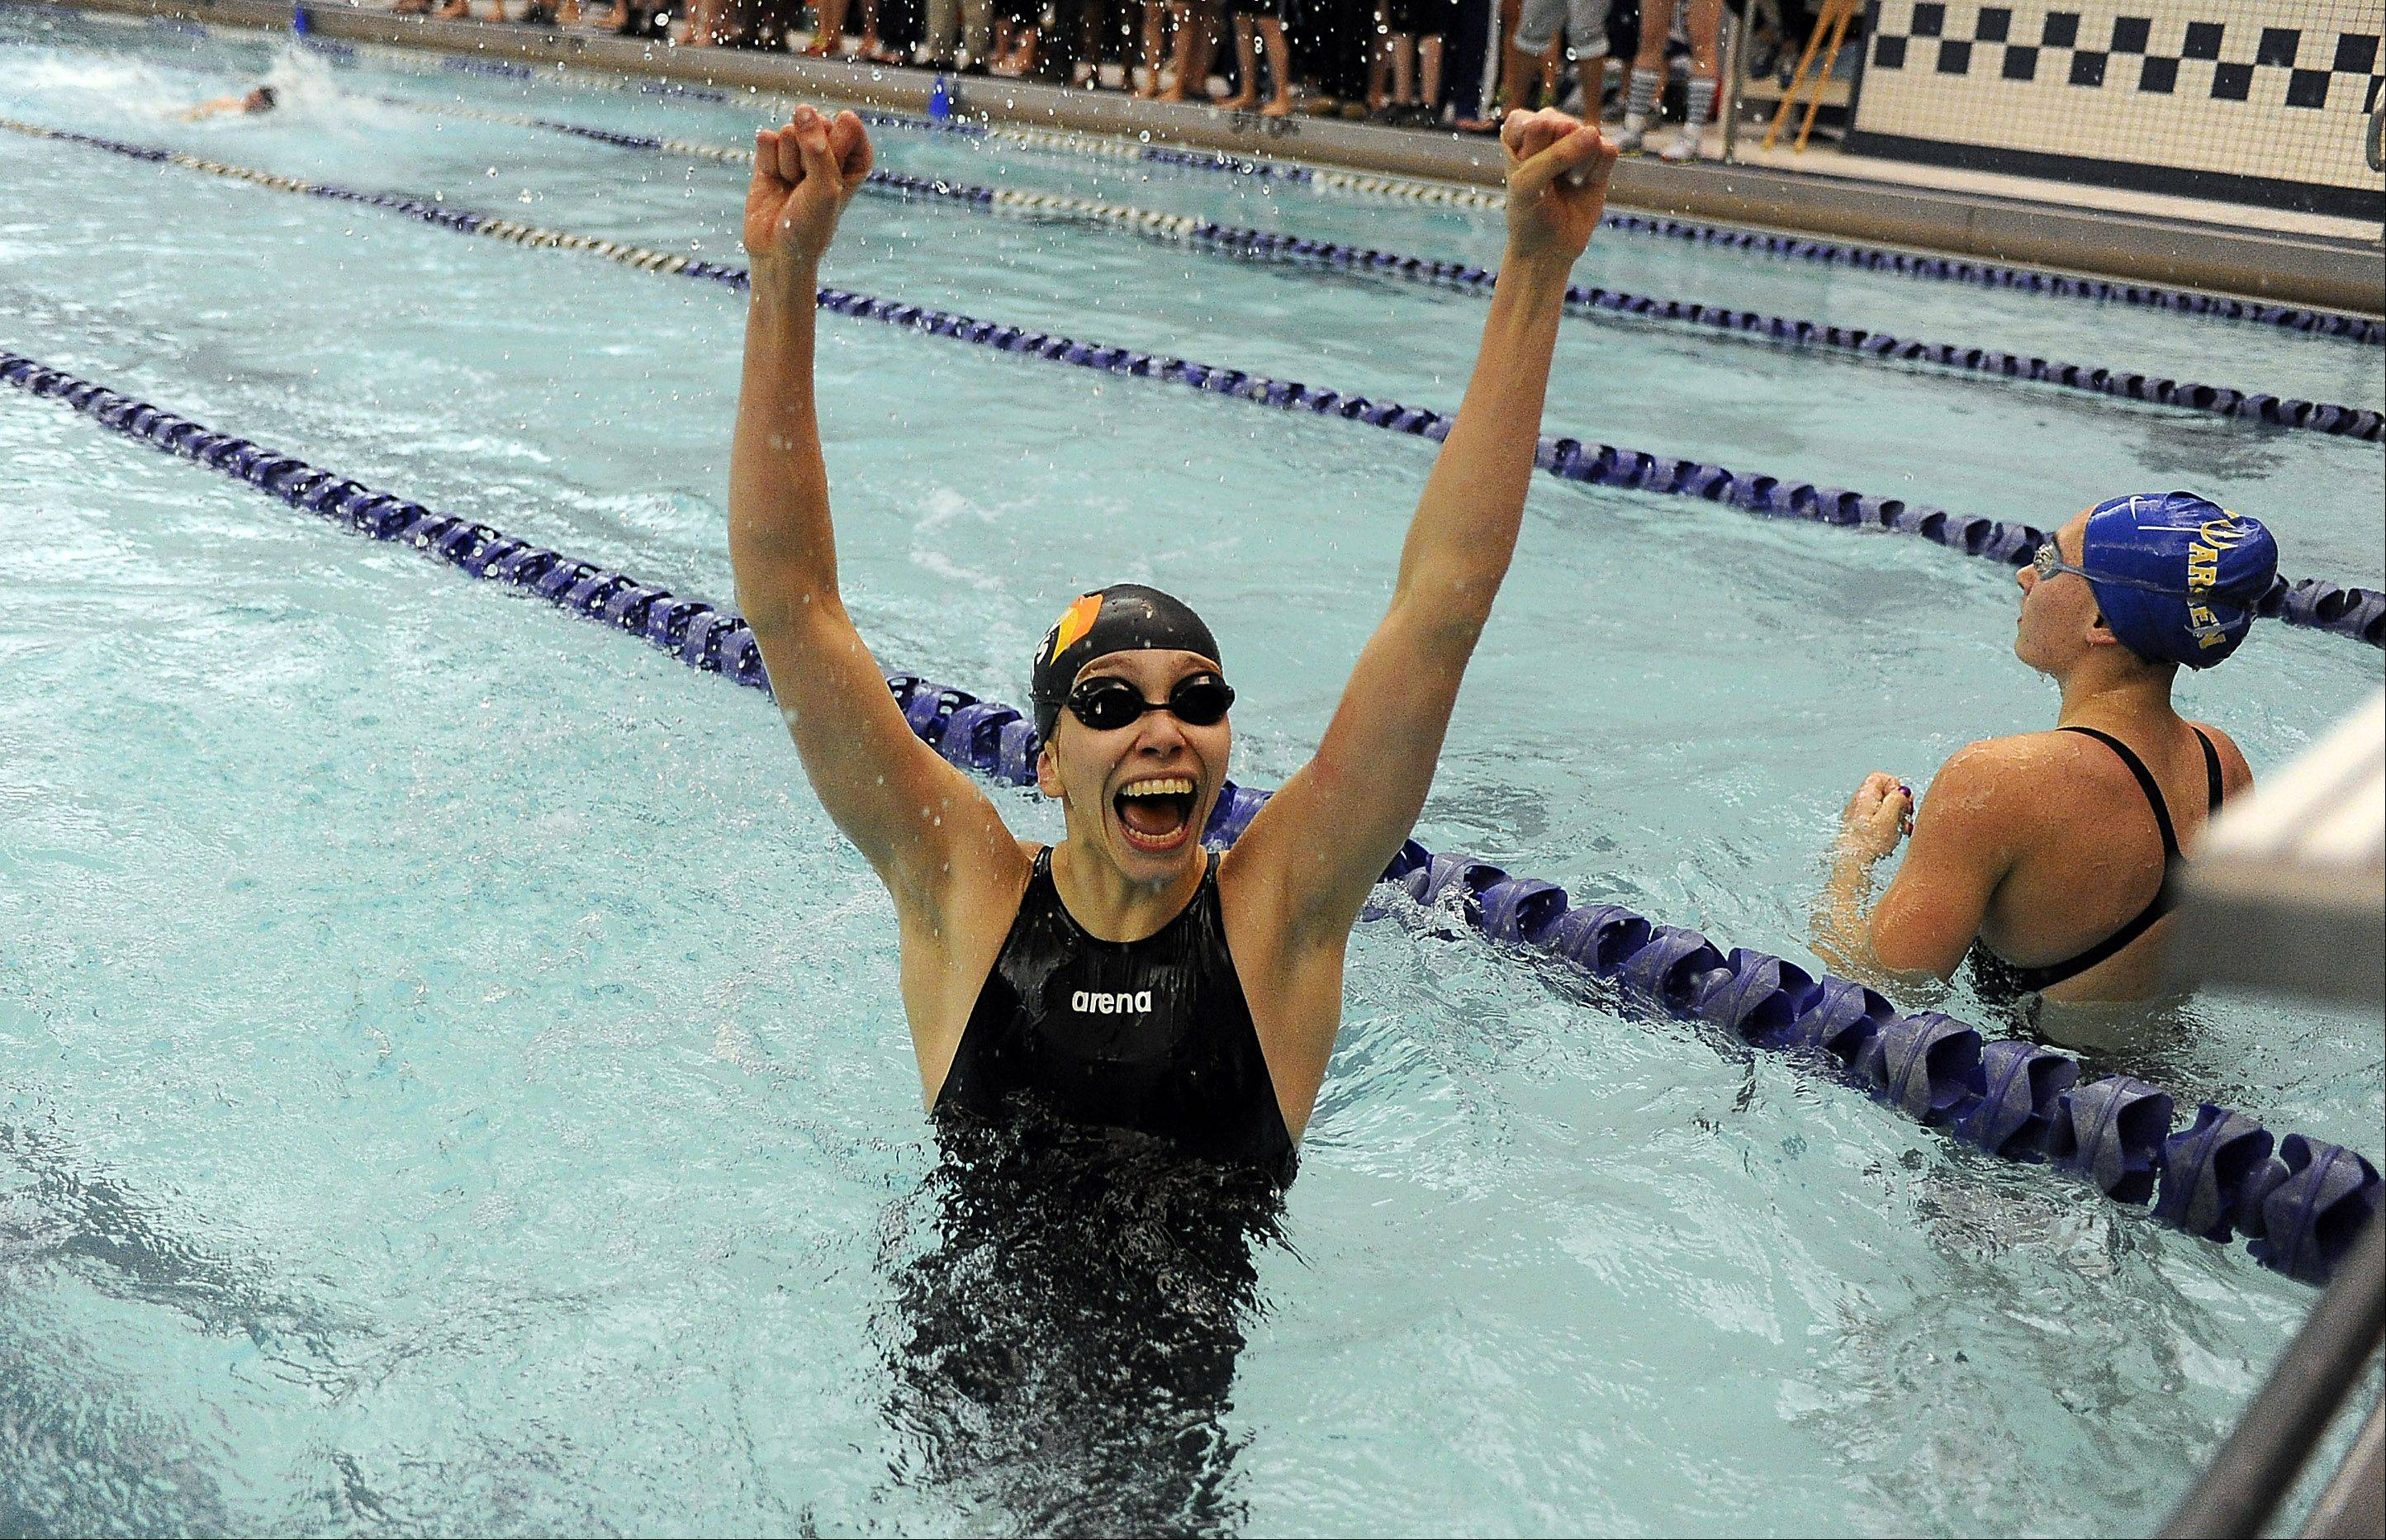 Sophia Lex of Libertyville celebrates her team's victory in the girls 200-yard medley relay in sectional swimming at Vernon Hills High School on Saturday. Her teammates were Macey Neubauer, Staci Herchenbach and Meredith Robbins.